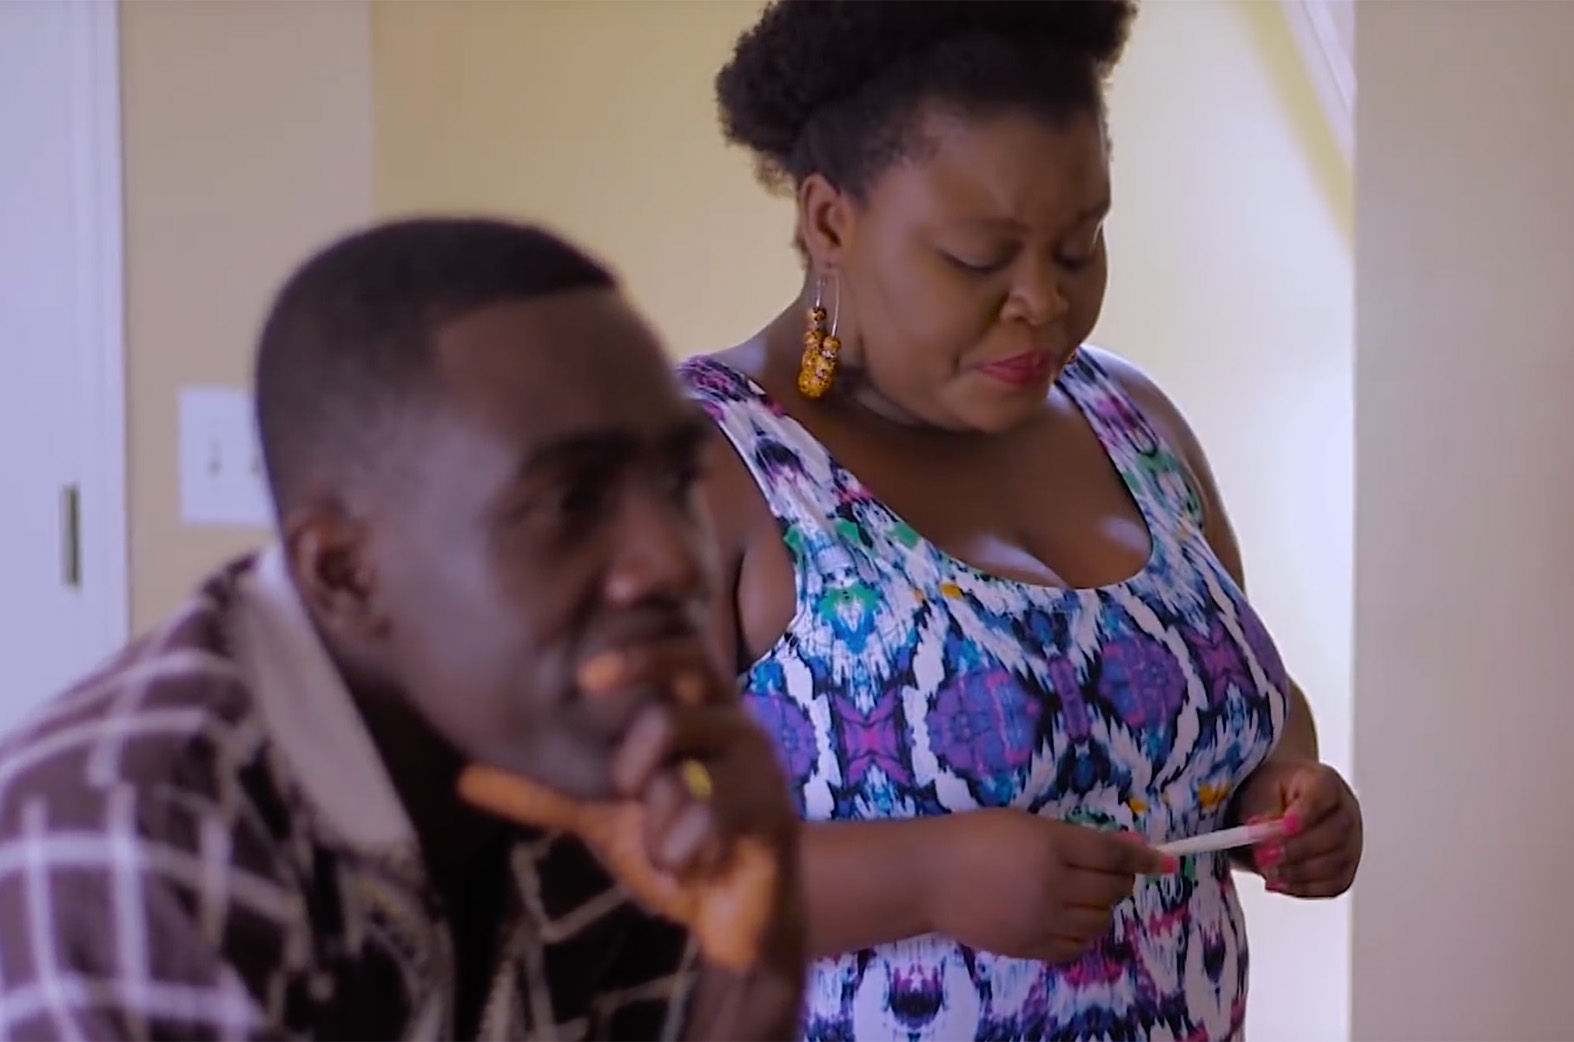 Video: Hold On by Akonobea Tina